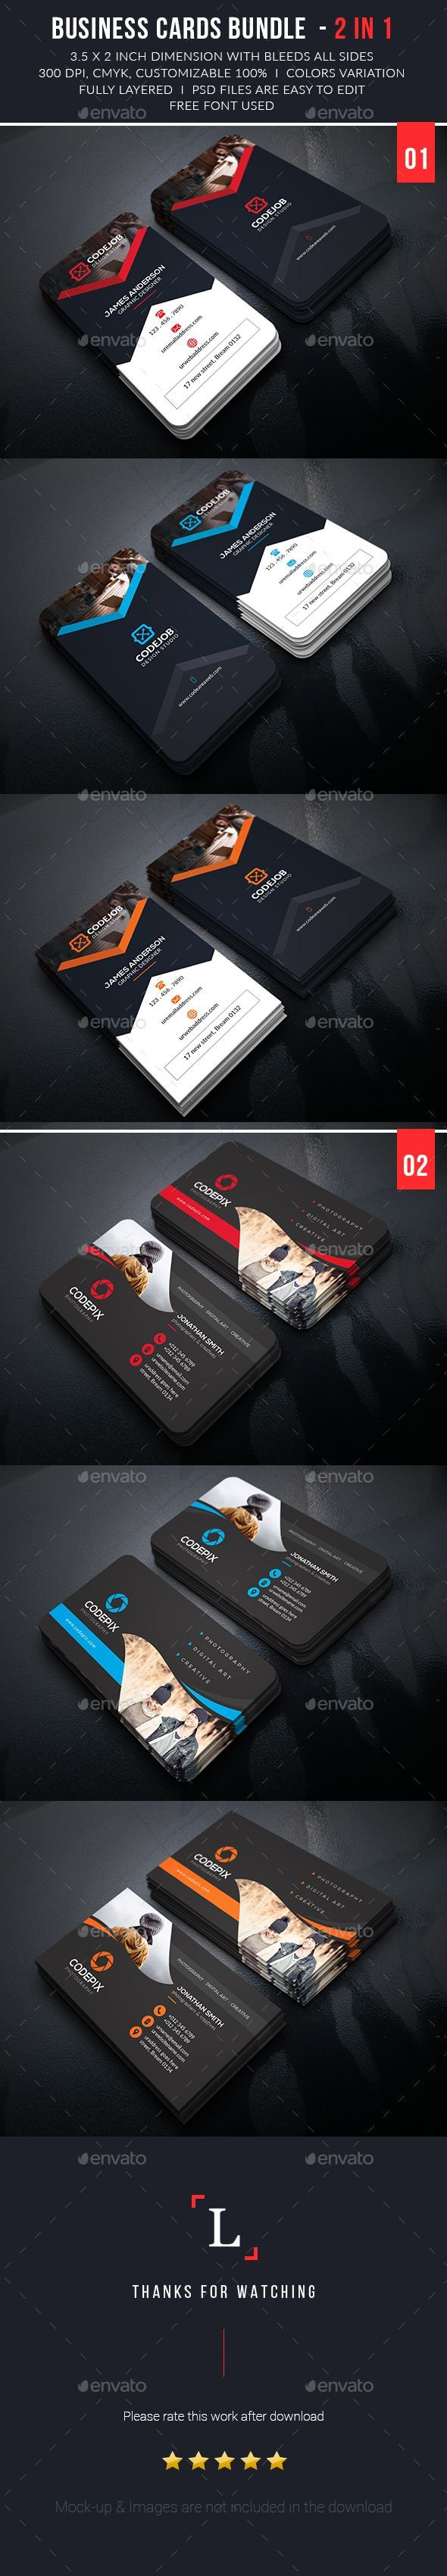 16 best Swimming Pool Business Cards images on Pinterest | Pools ...